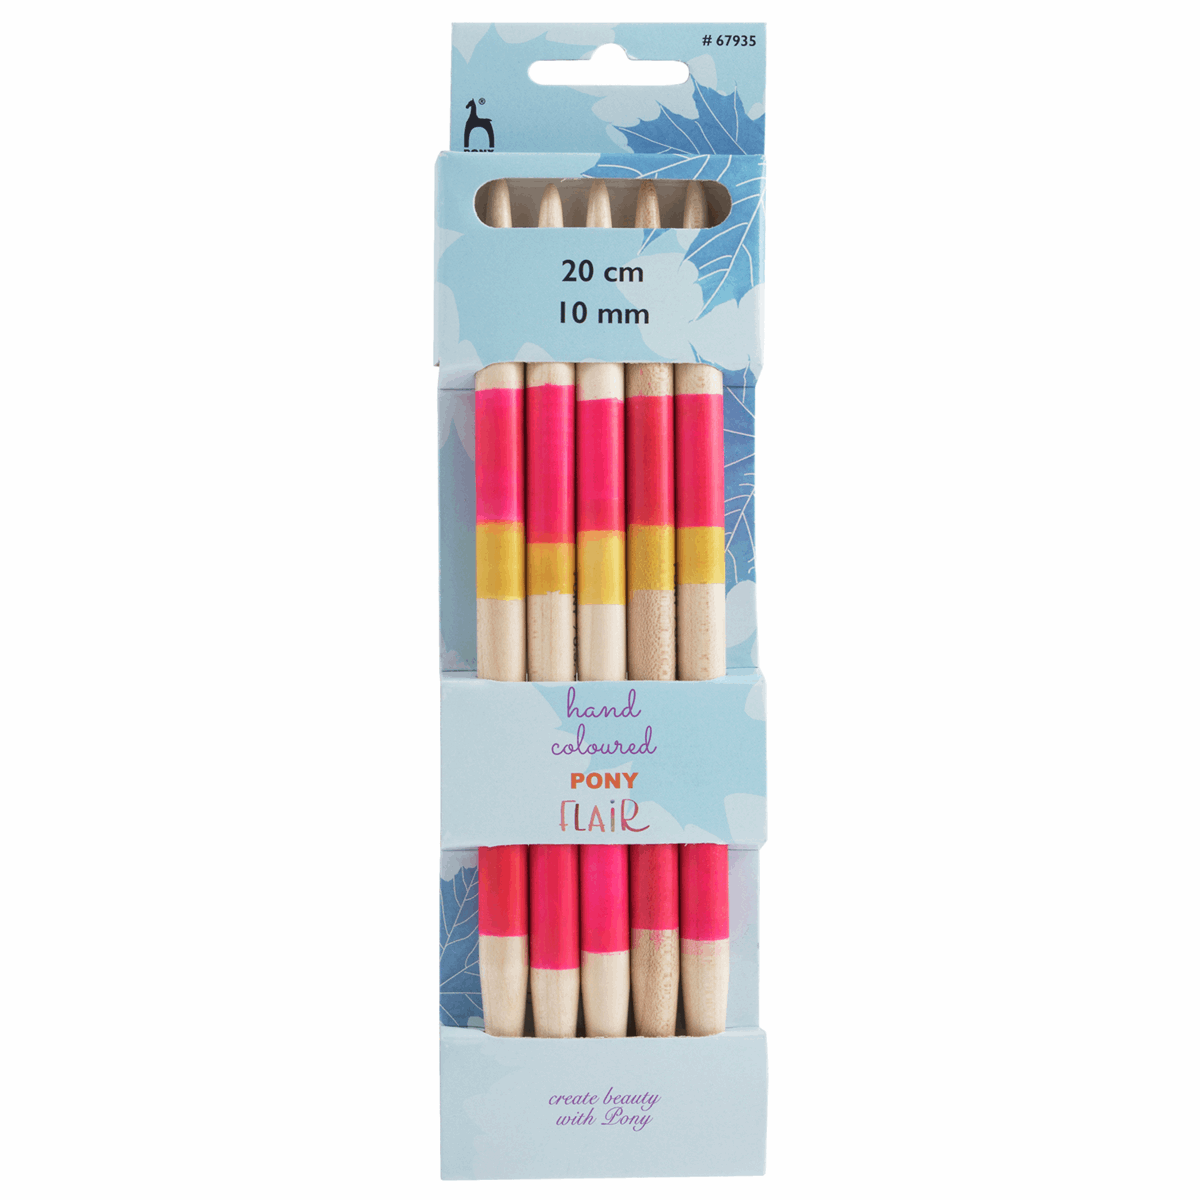 PONY Set of 5 Double-Ended Flair Coloured Knitting Pins - 20cm x 10mm